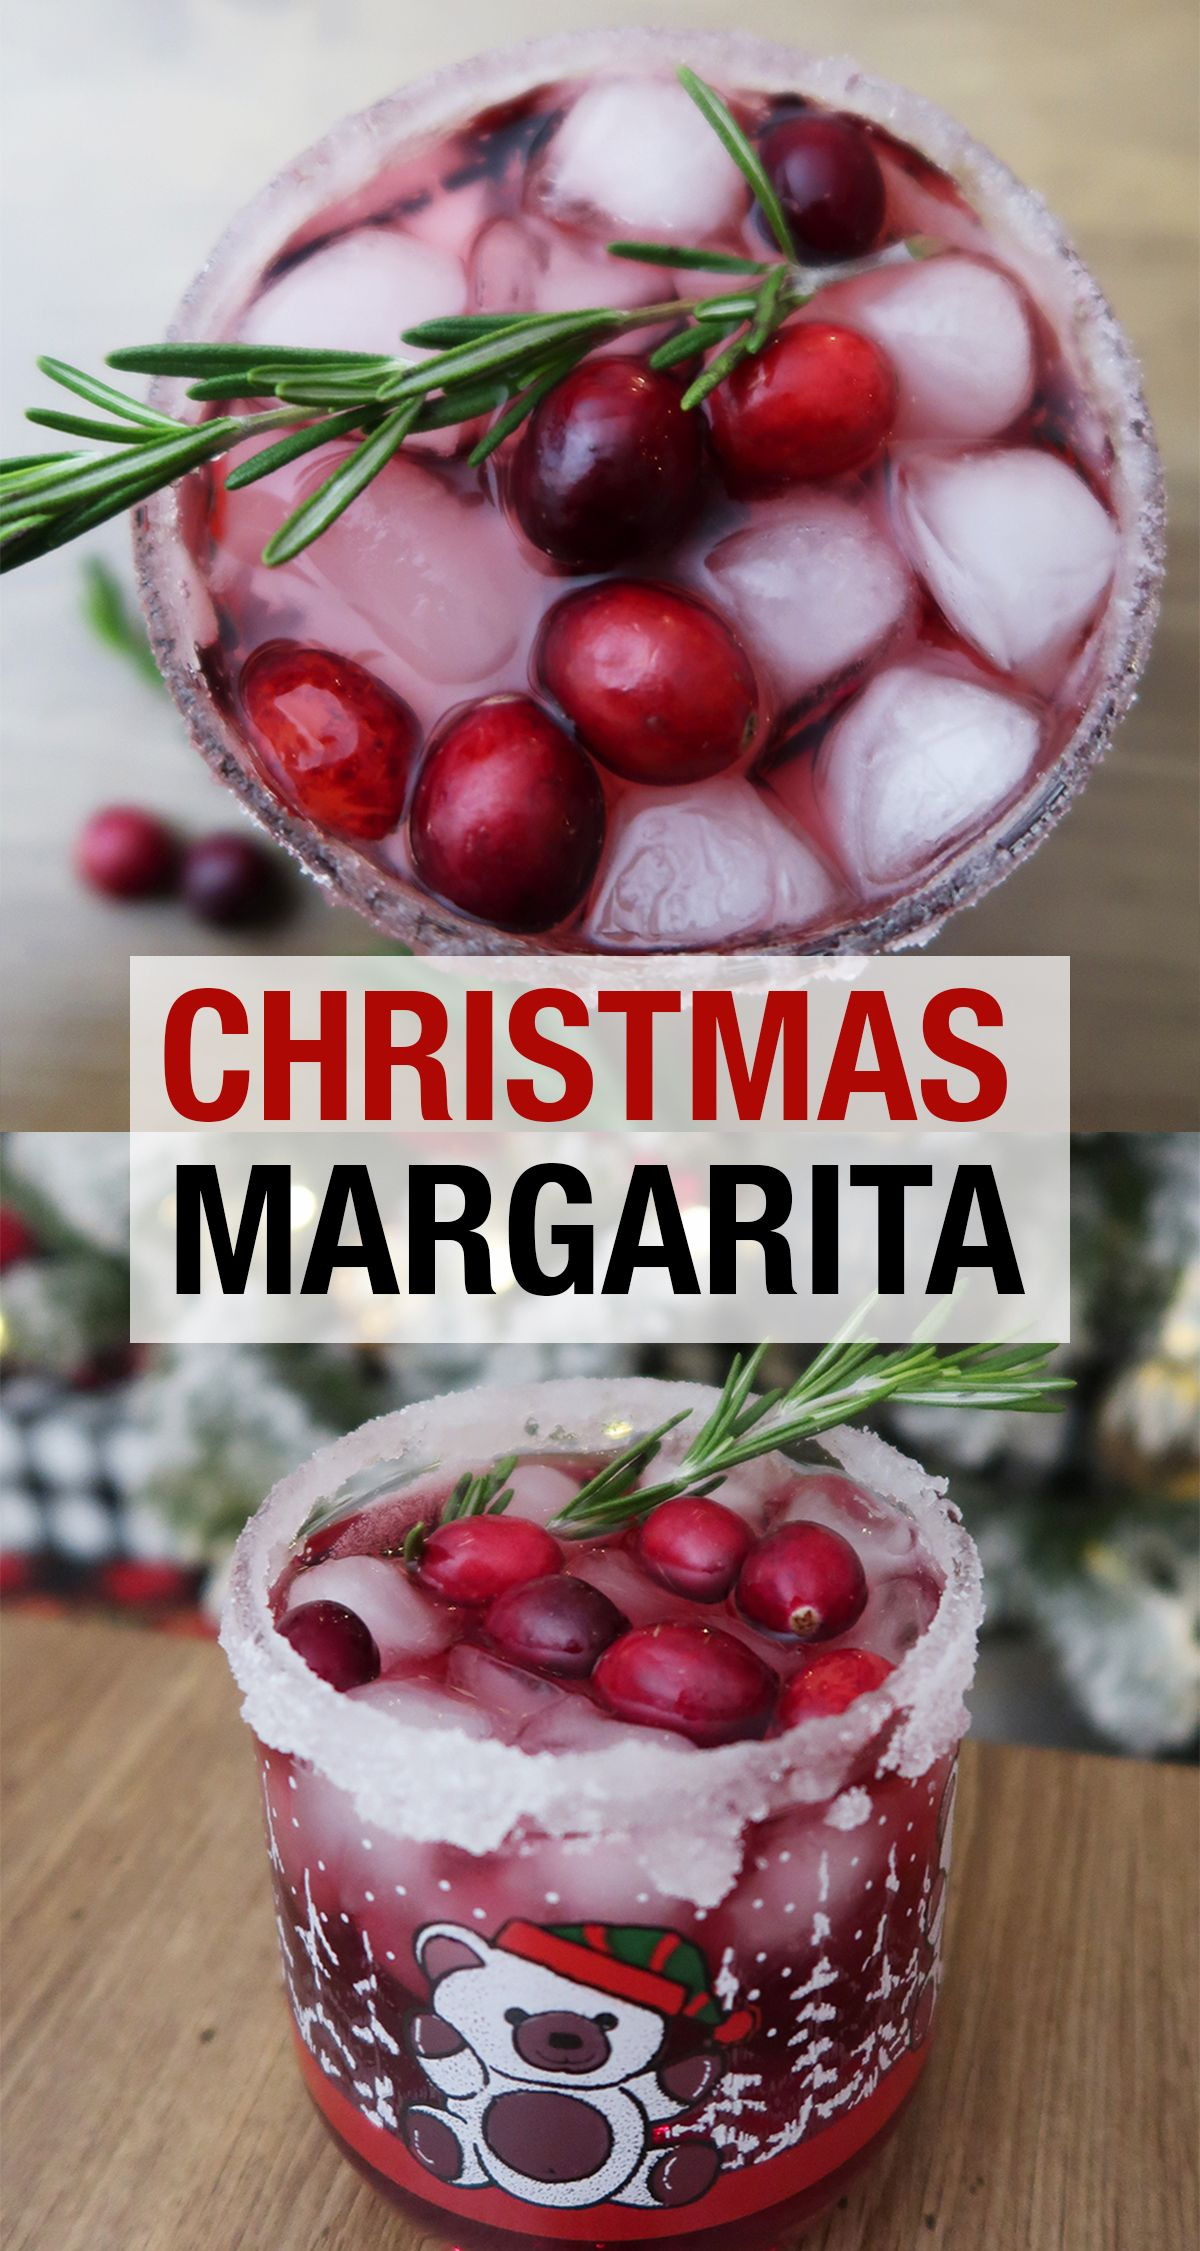 Christmas Margarita - Weekend Craft #christmasmargarita